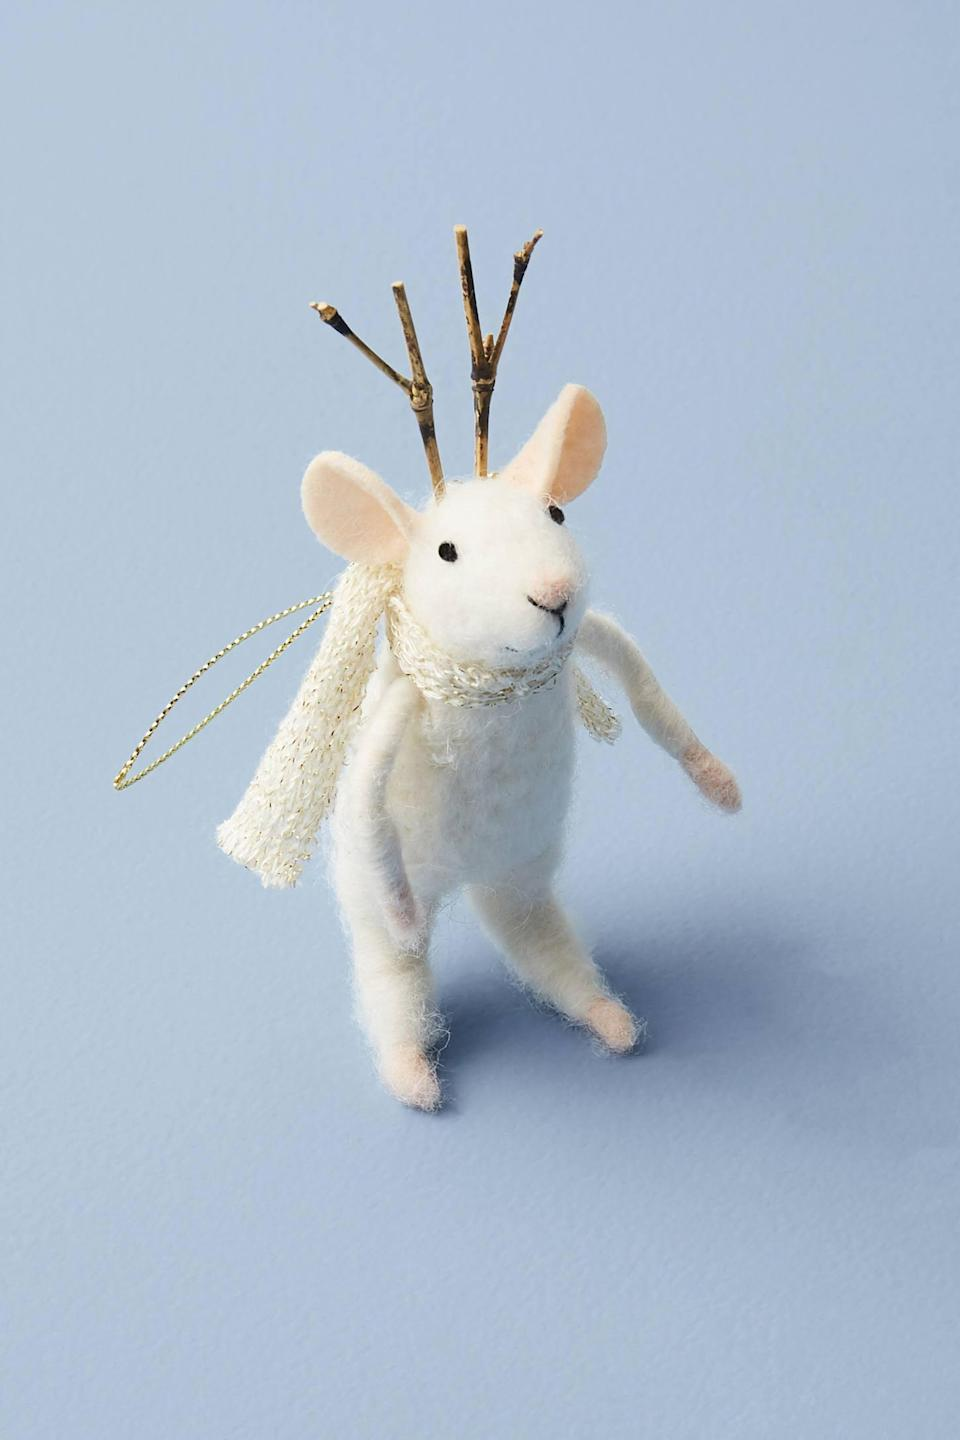 """<p>Dressed in a shimmery scarf and antlers, you can't say no to this cute <a href=""""https://www.popsugar.com/buy/Cozy-Mouse-Ornament-490448?p_name=Cozy%20Mouse%20Ornament&retailer=anthropologie.com&pid=490448&price=16&evar1=casa%3Aus&evar9=46615300&evar98=https%3A%2F%2Fwww.popsugar.com%2Fhome%2Fphoto-gallery%2F46615300%2Fimage%2F46615318%2FCozy-Mouse-Ornament&list1=shopping%2Canthropologie%2Choliday%2Cchristmas%2Cchristmas%20decorations%2Choliday%20decor%2Chome%20shopping&prop13=mobile&pdata=1"""" rel=""""nofollow noopener"""" class=""""link rapid-noclick-resp"""" target=""""_blank"""" data-ylk=""""slk:Cozy Mouse Ornament"""">Cozy Mouse Ornament</a> ($16).</p>"""